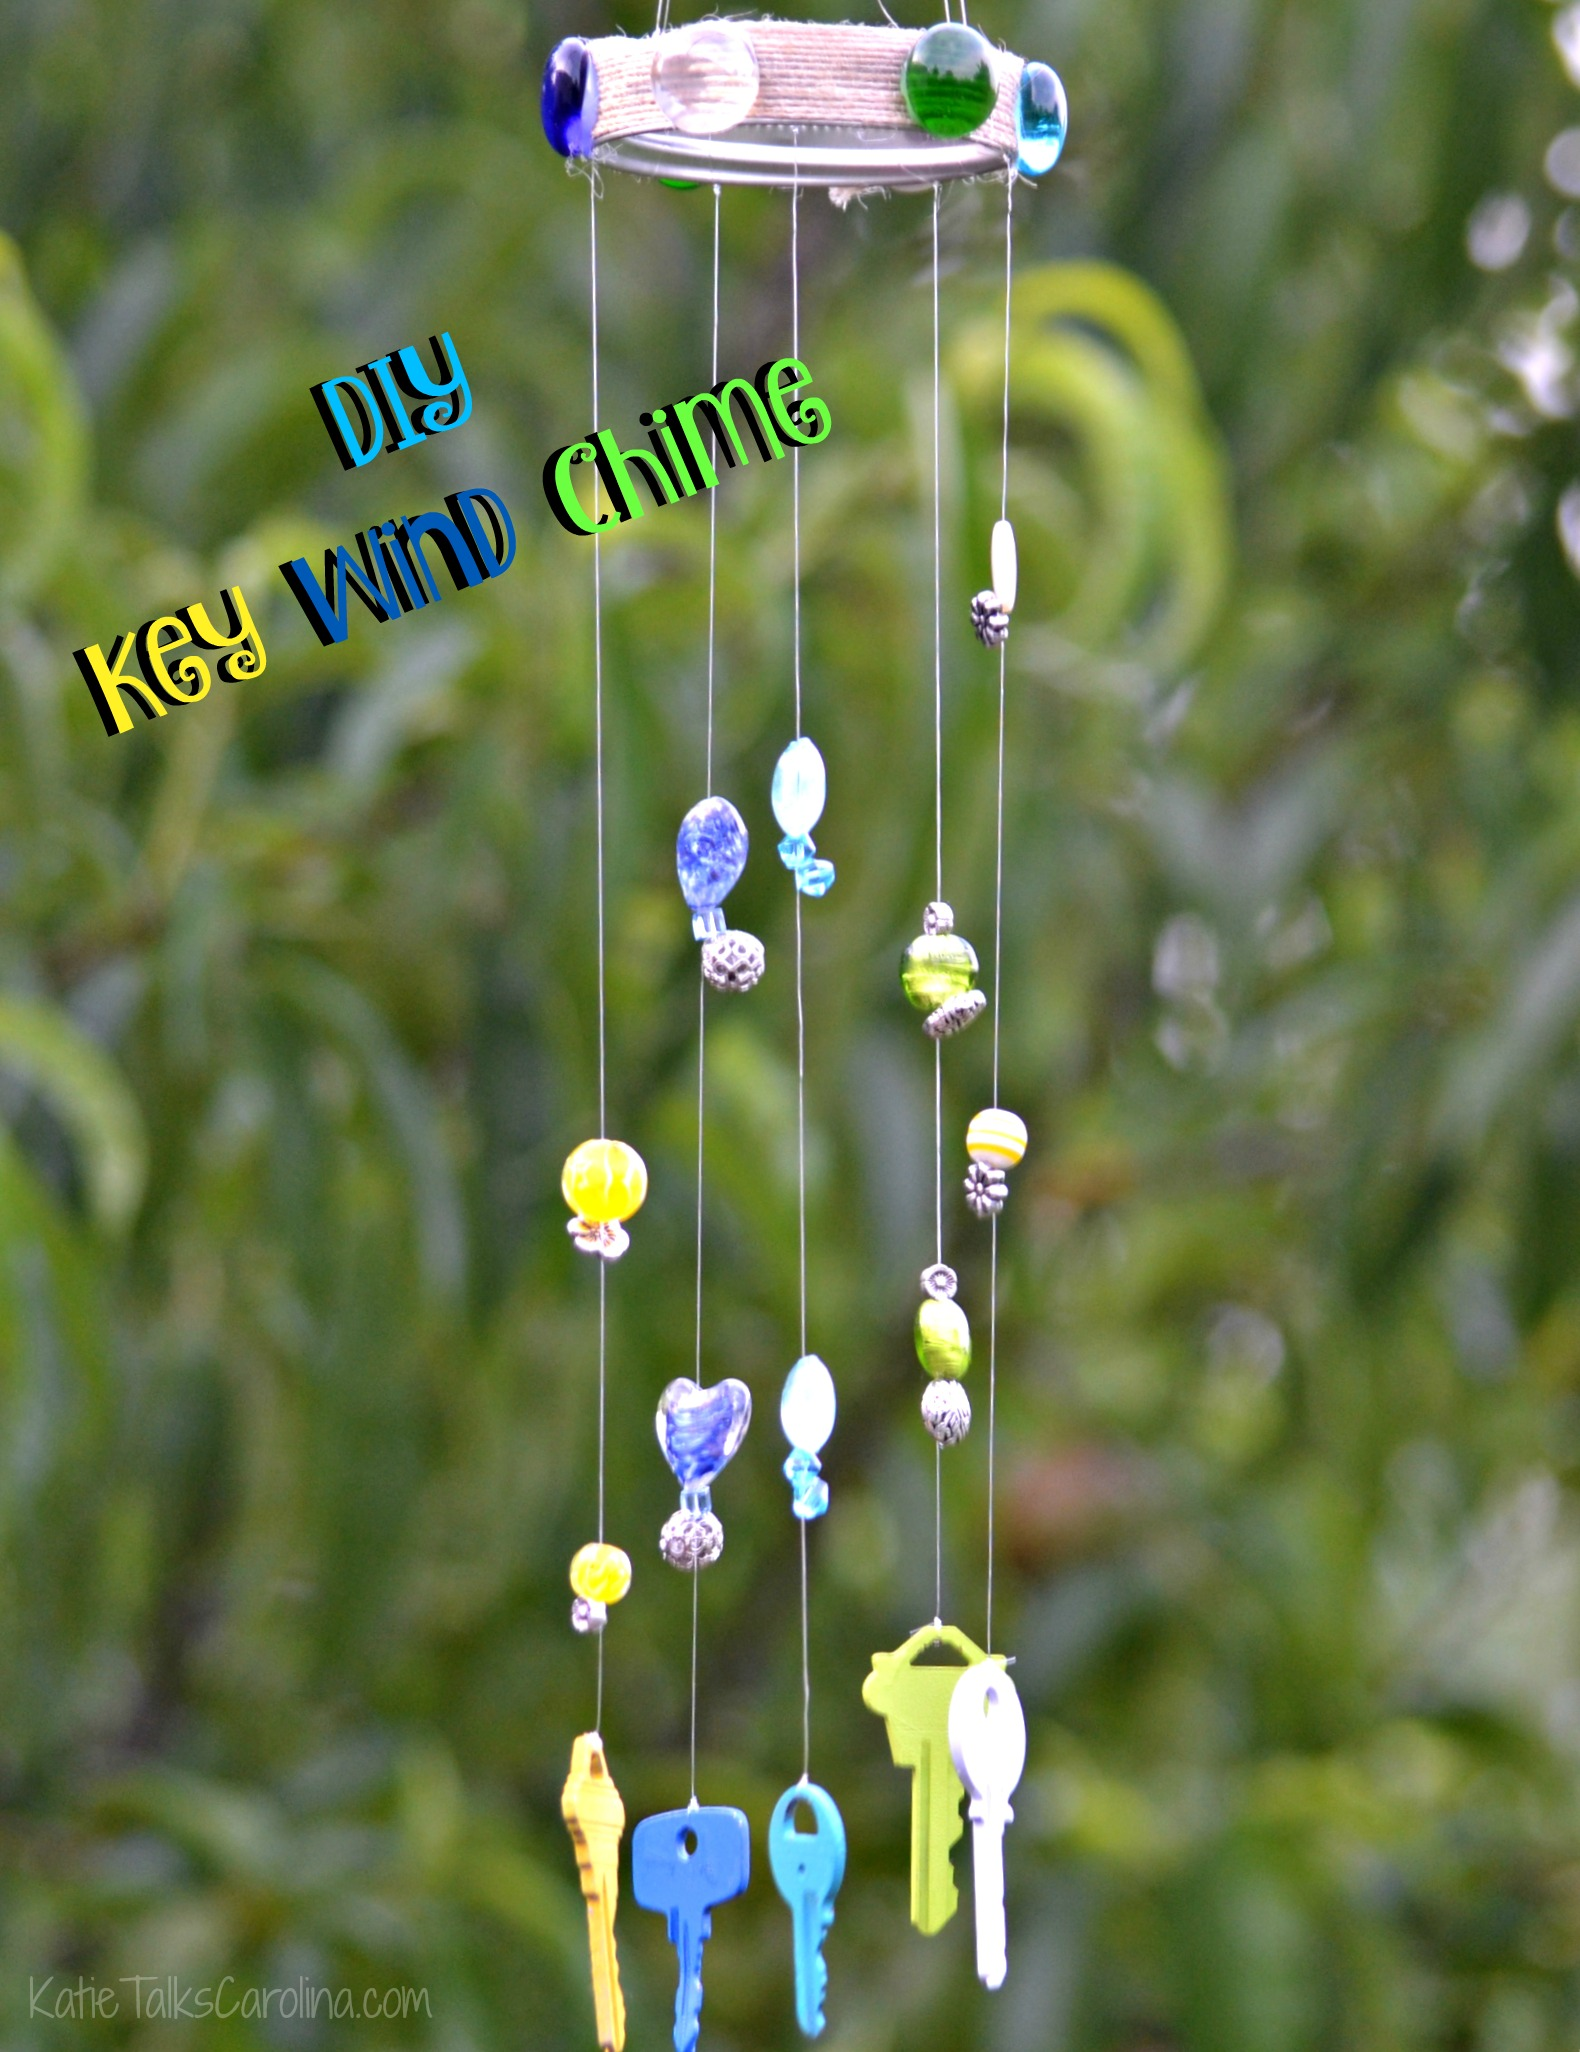 Diy key wind chime katie talks carolina for Easy wind chimes